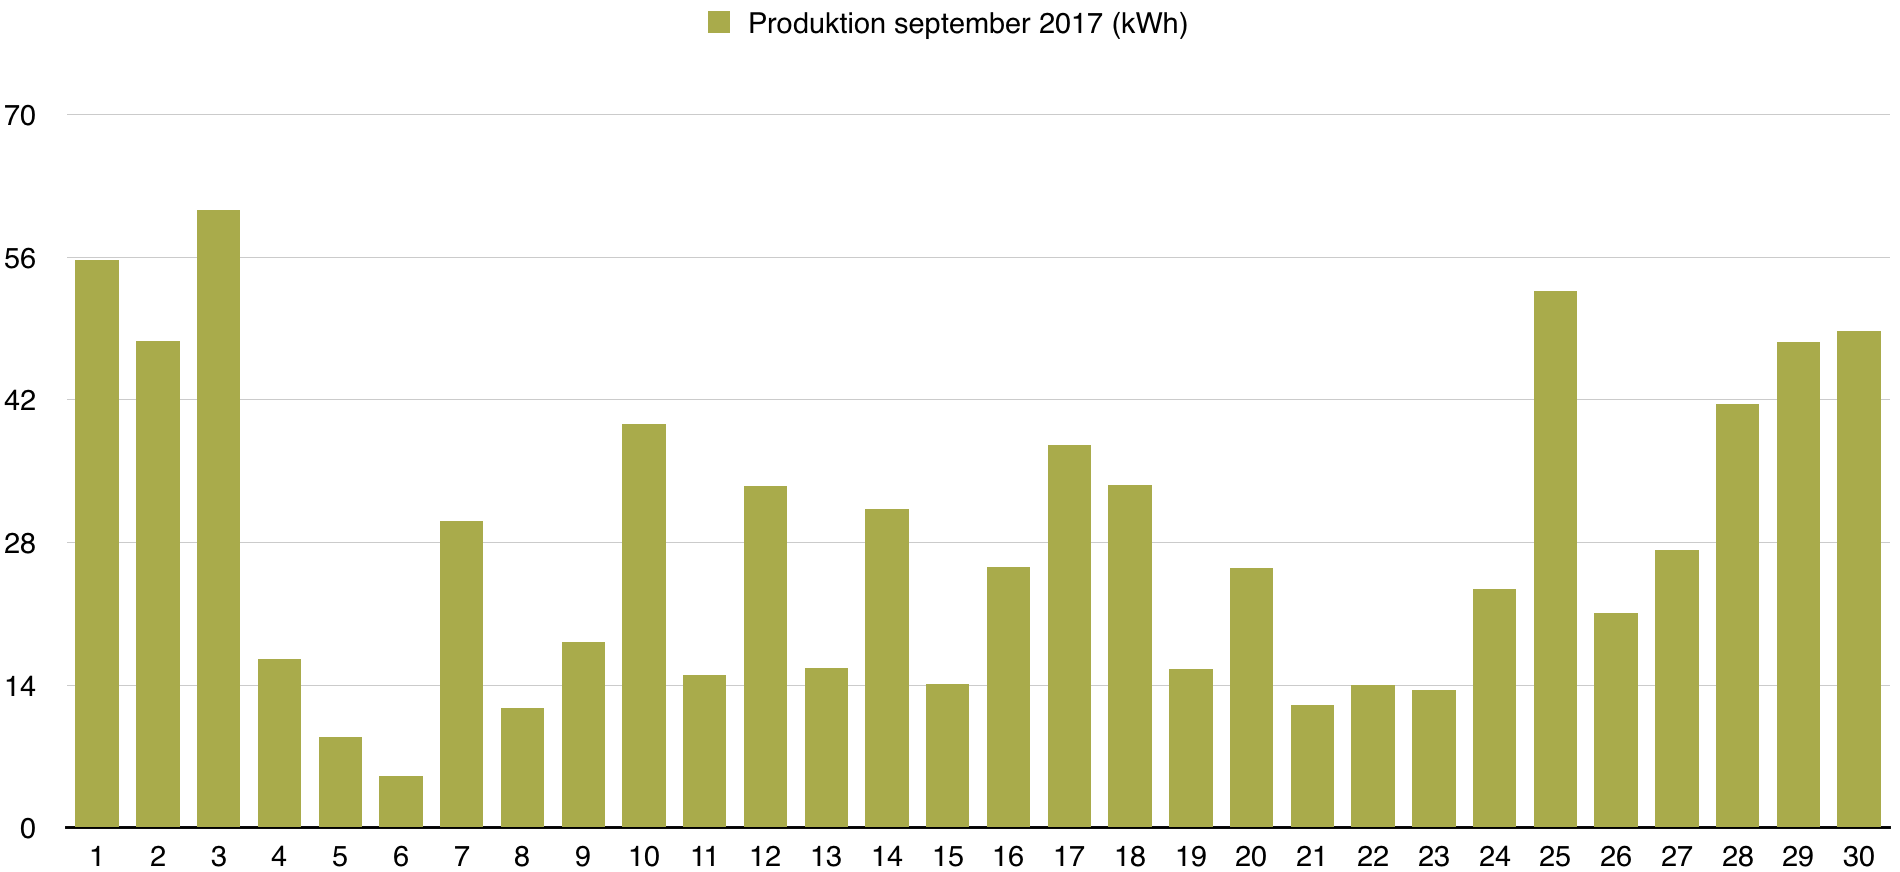 Solceller - Dagsproduktion för september 2017